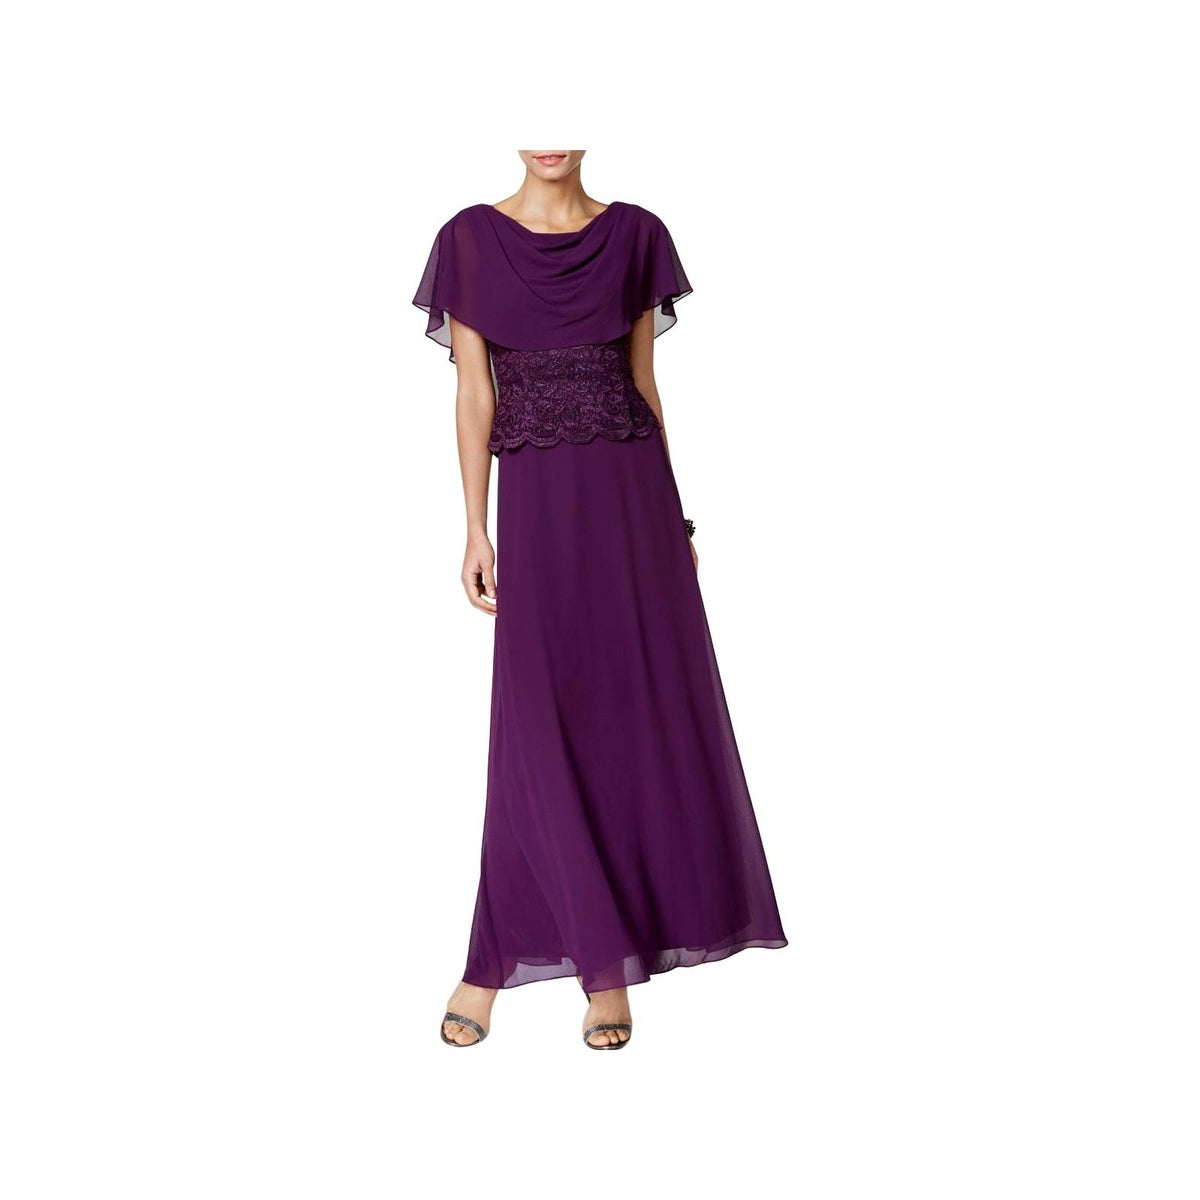 c2ccbac03 Jessica Howard Dresses | Find Great Women's Clothing Deals Shopping at  Overstock